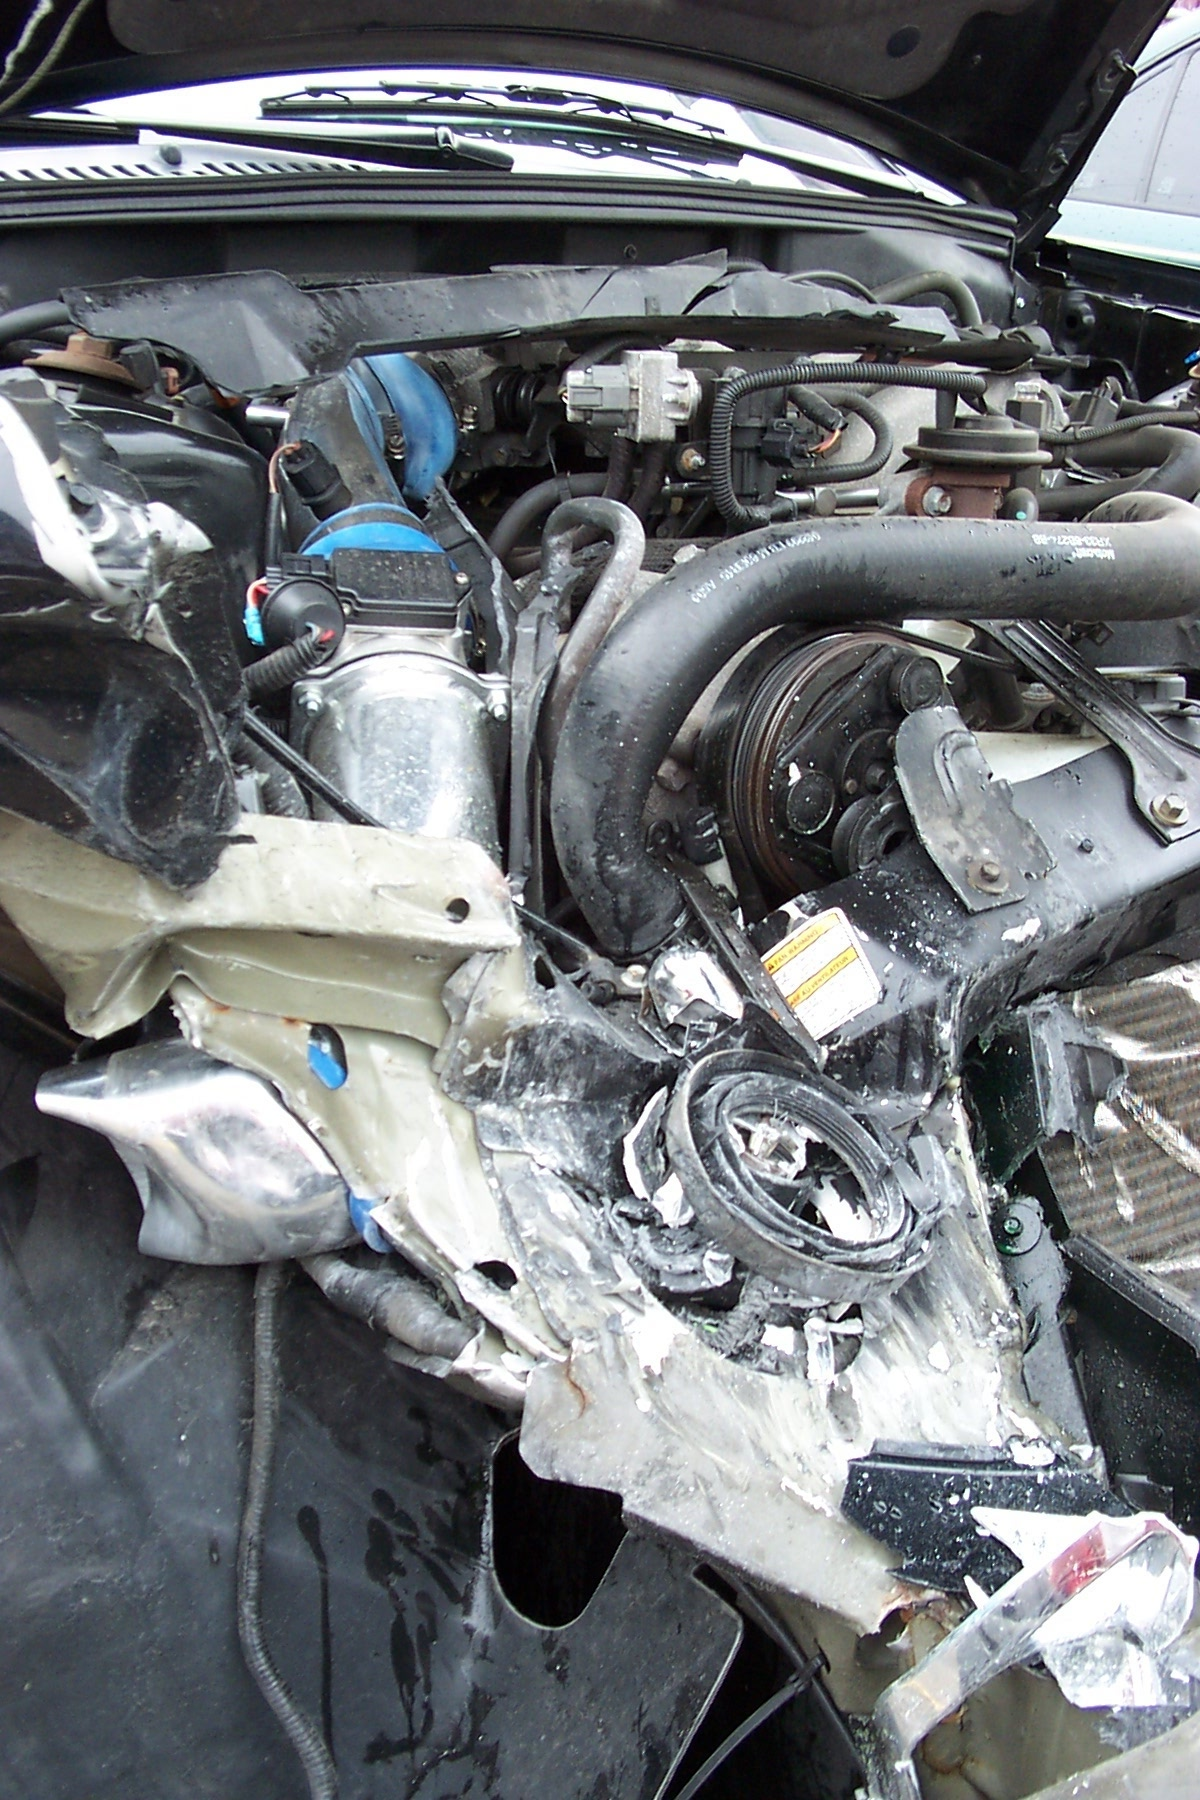 Click image for larger version  Name:mustang wreck 04-30-05 006.jpg Views:81 Size:540.4 KB ID:9576